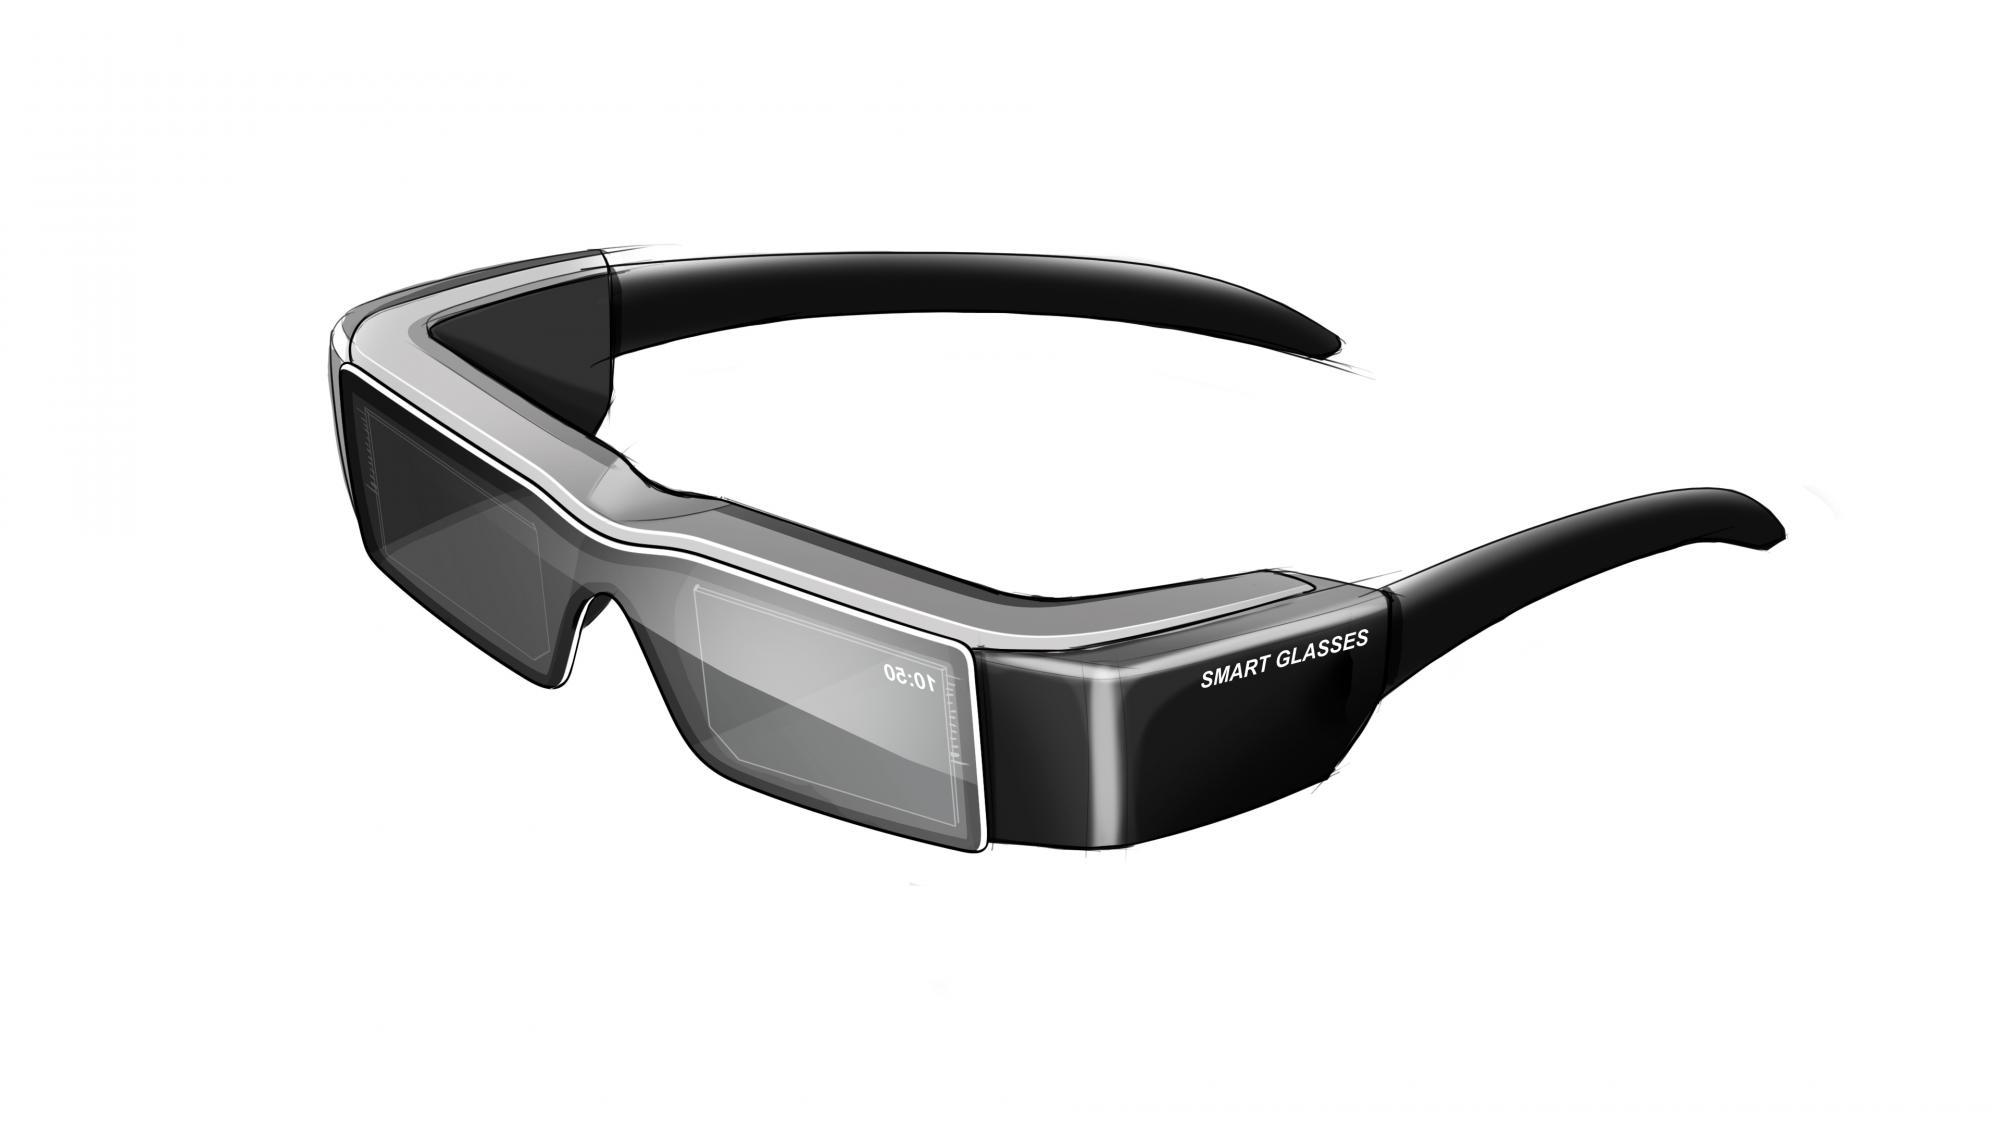 Hot Bar Bonding connections for smart glasses